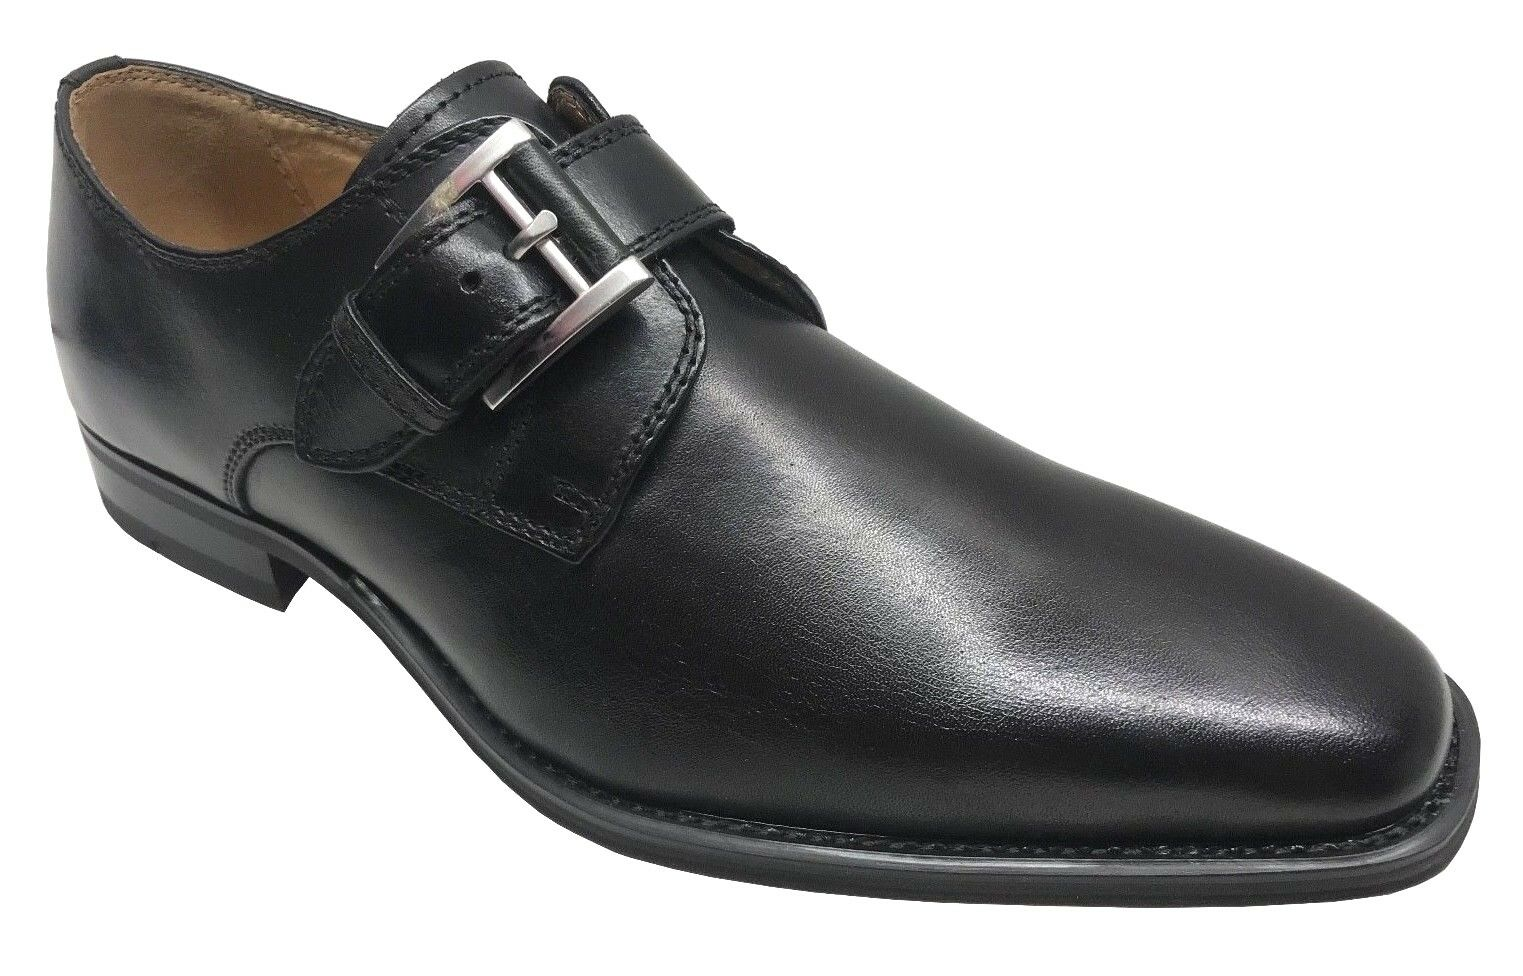 La Milano Men's Monk Strap Black Leather Dress Shoes A11890